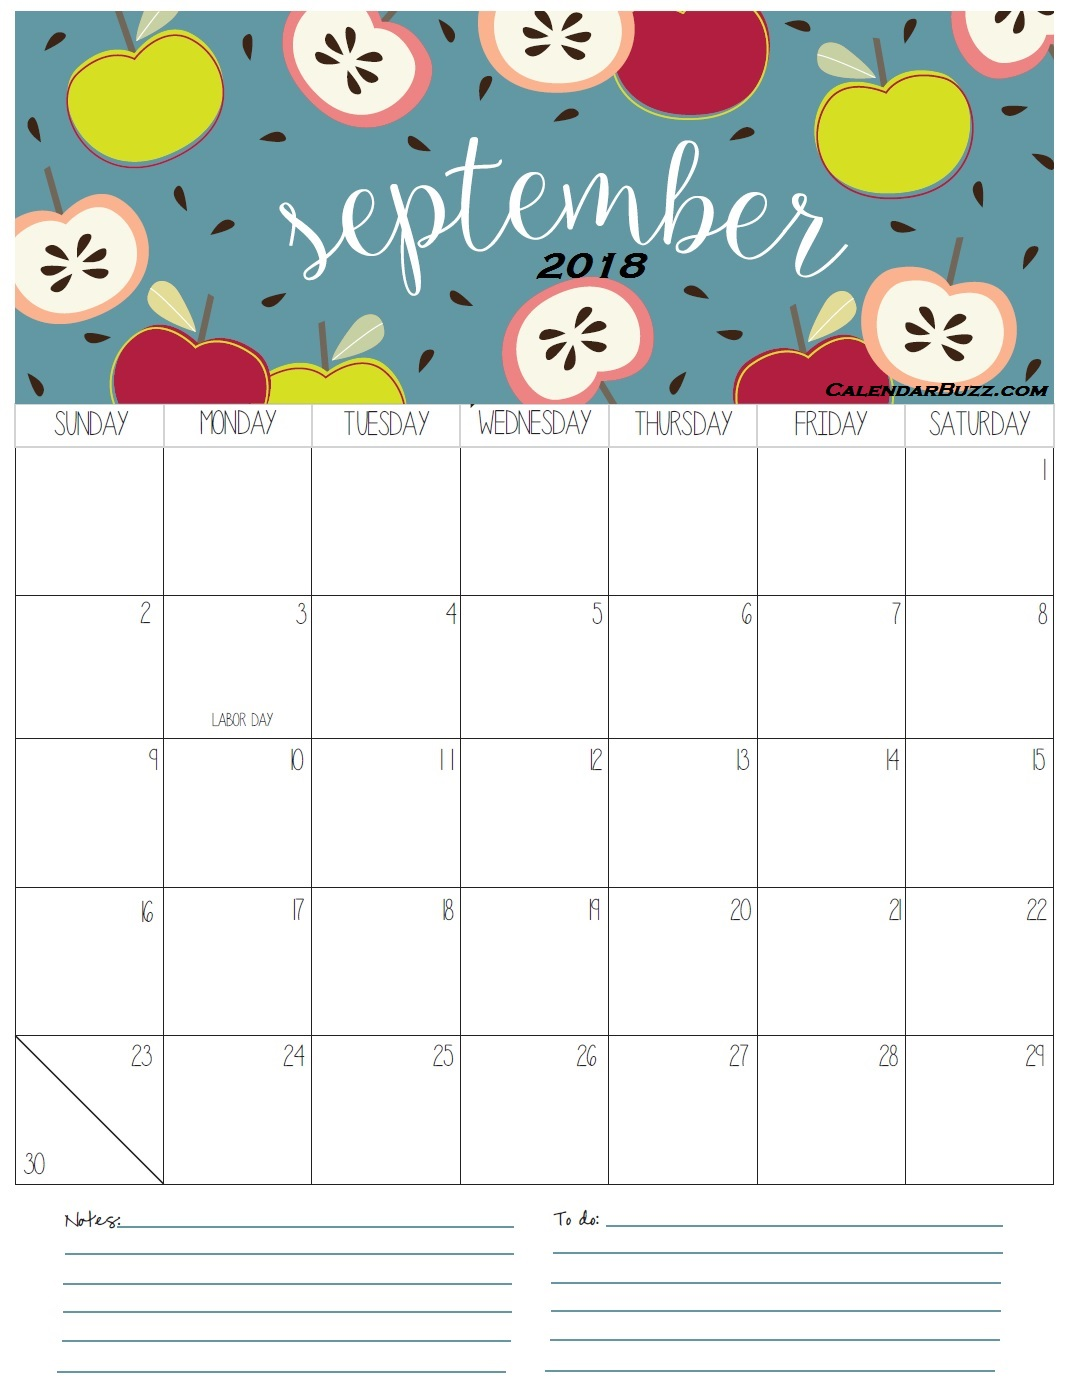 Printable Calendar September 2018 With Holidays